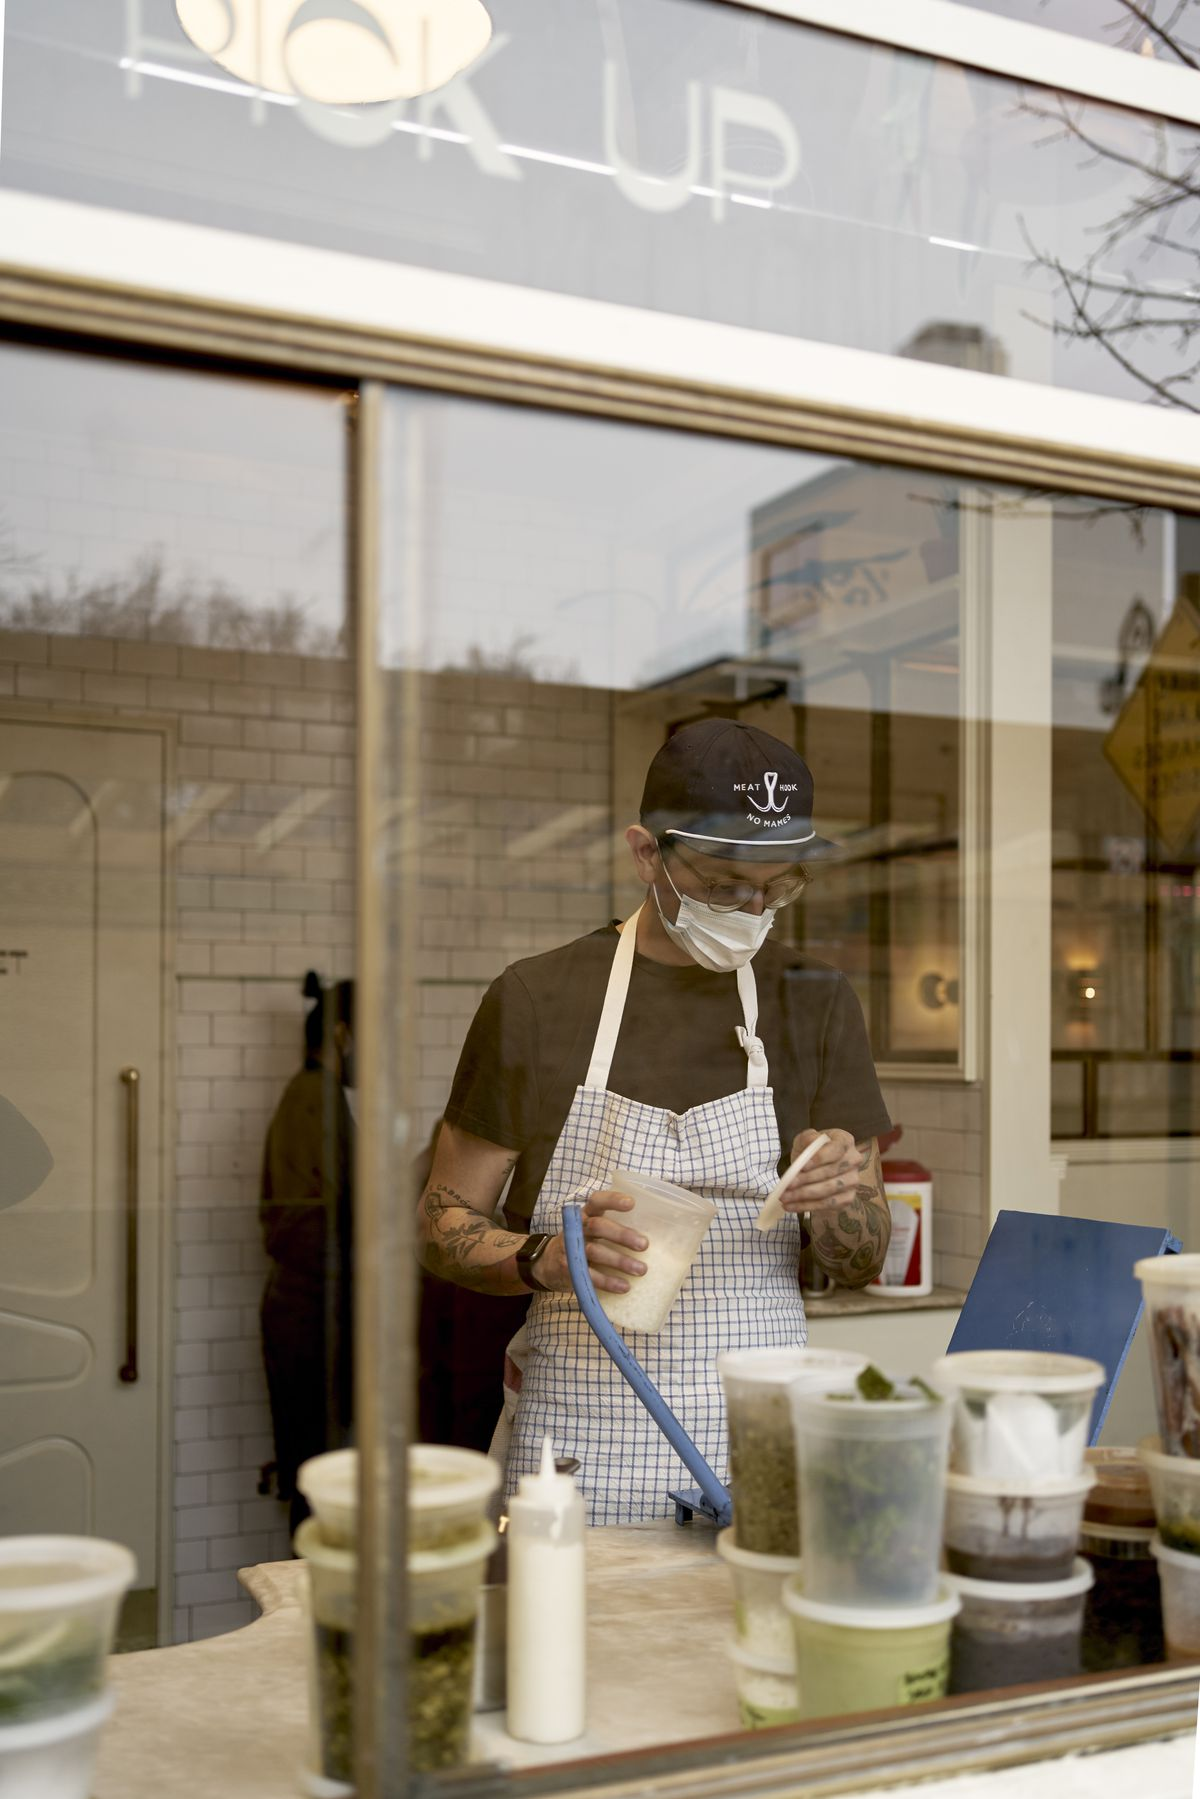 A person with a plaid apron on stands behind a pickup window measuring out ingredients. Sauces and ingredients are stacked in quart containers on the counter